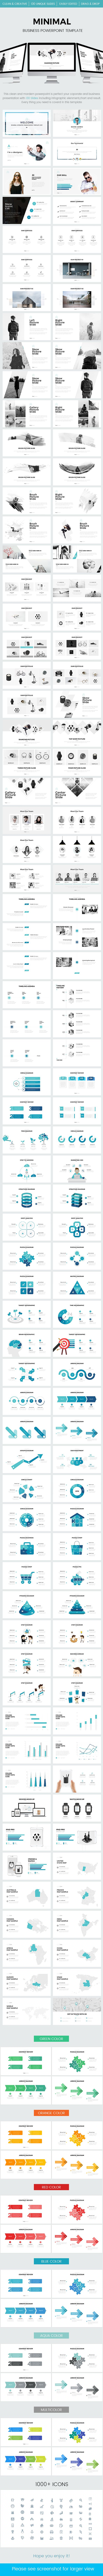 Minimal Business Powerpoint Template. Download: https://graphicriver.net/item/minimal-business-powerpoint-template/19894101?ref=thanhdesign